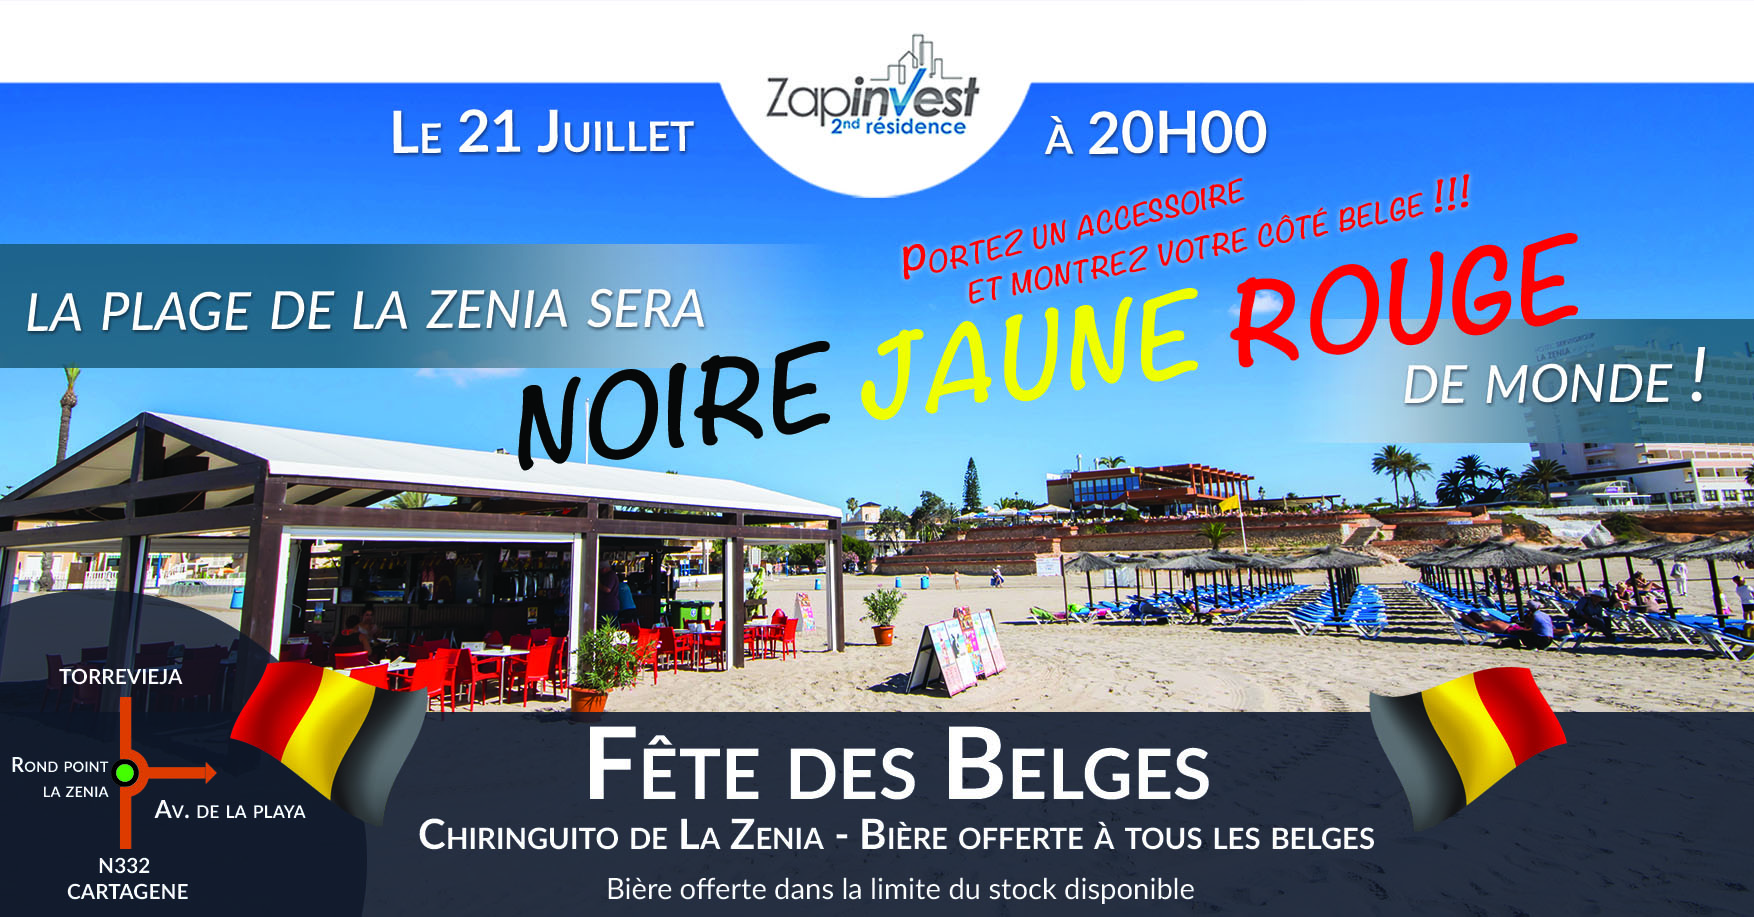 Fete des belges Final